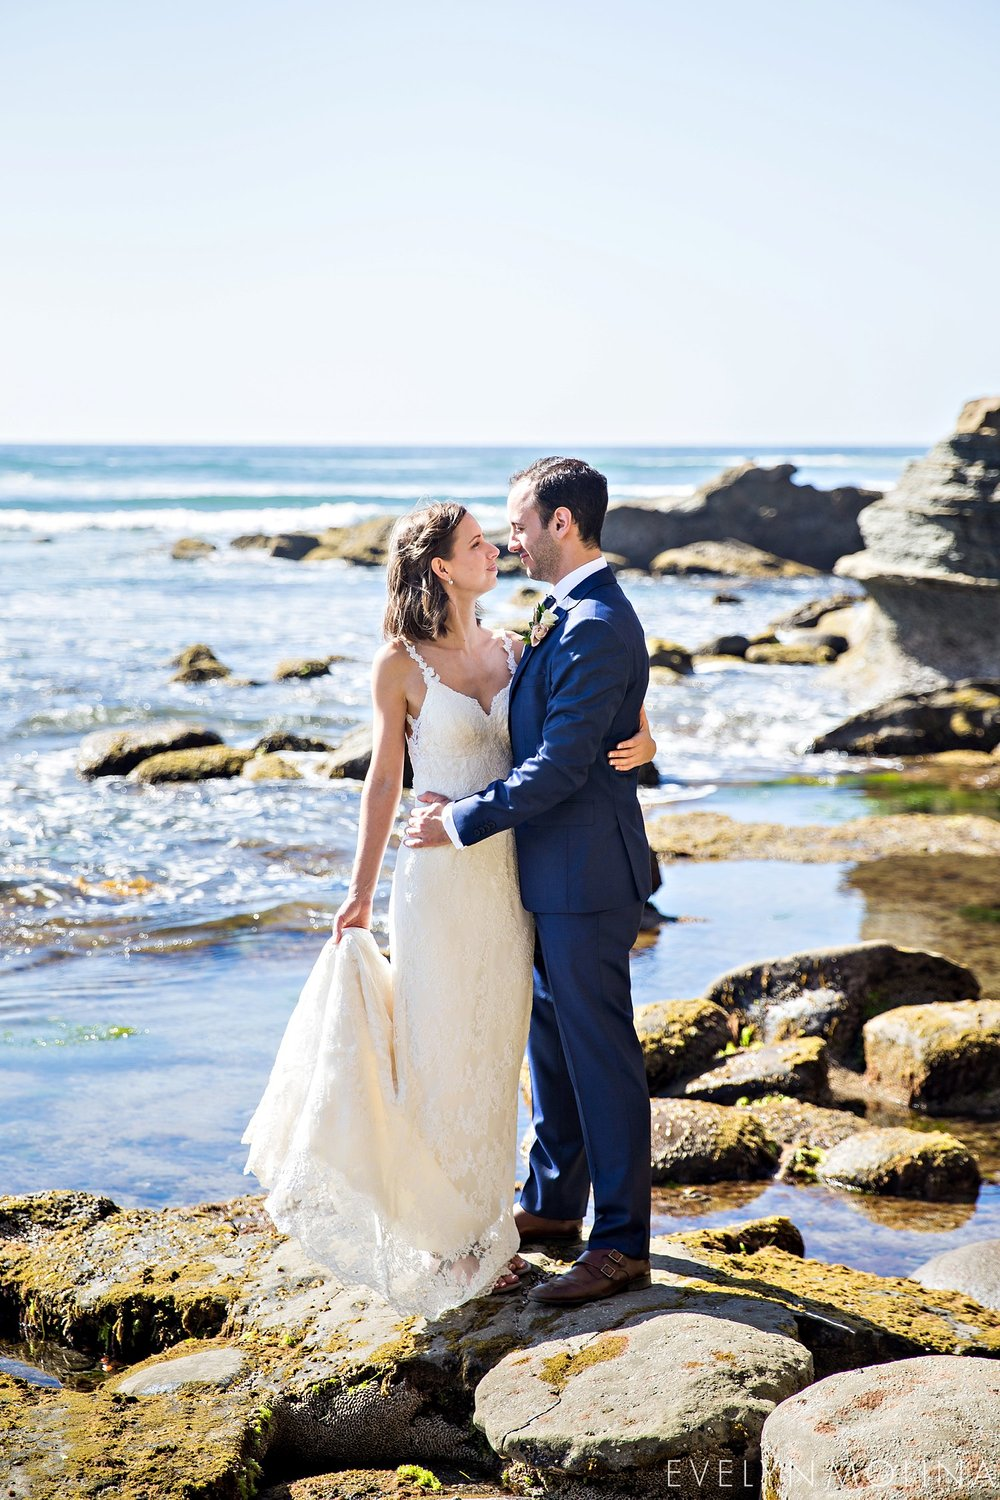 Sunset Cliffs Wedding Portraits - Becca and Alex - Evelyn Molina Photography_0008.jpg